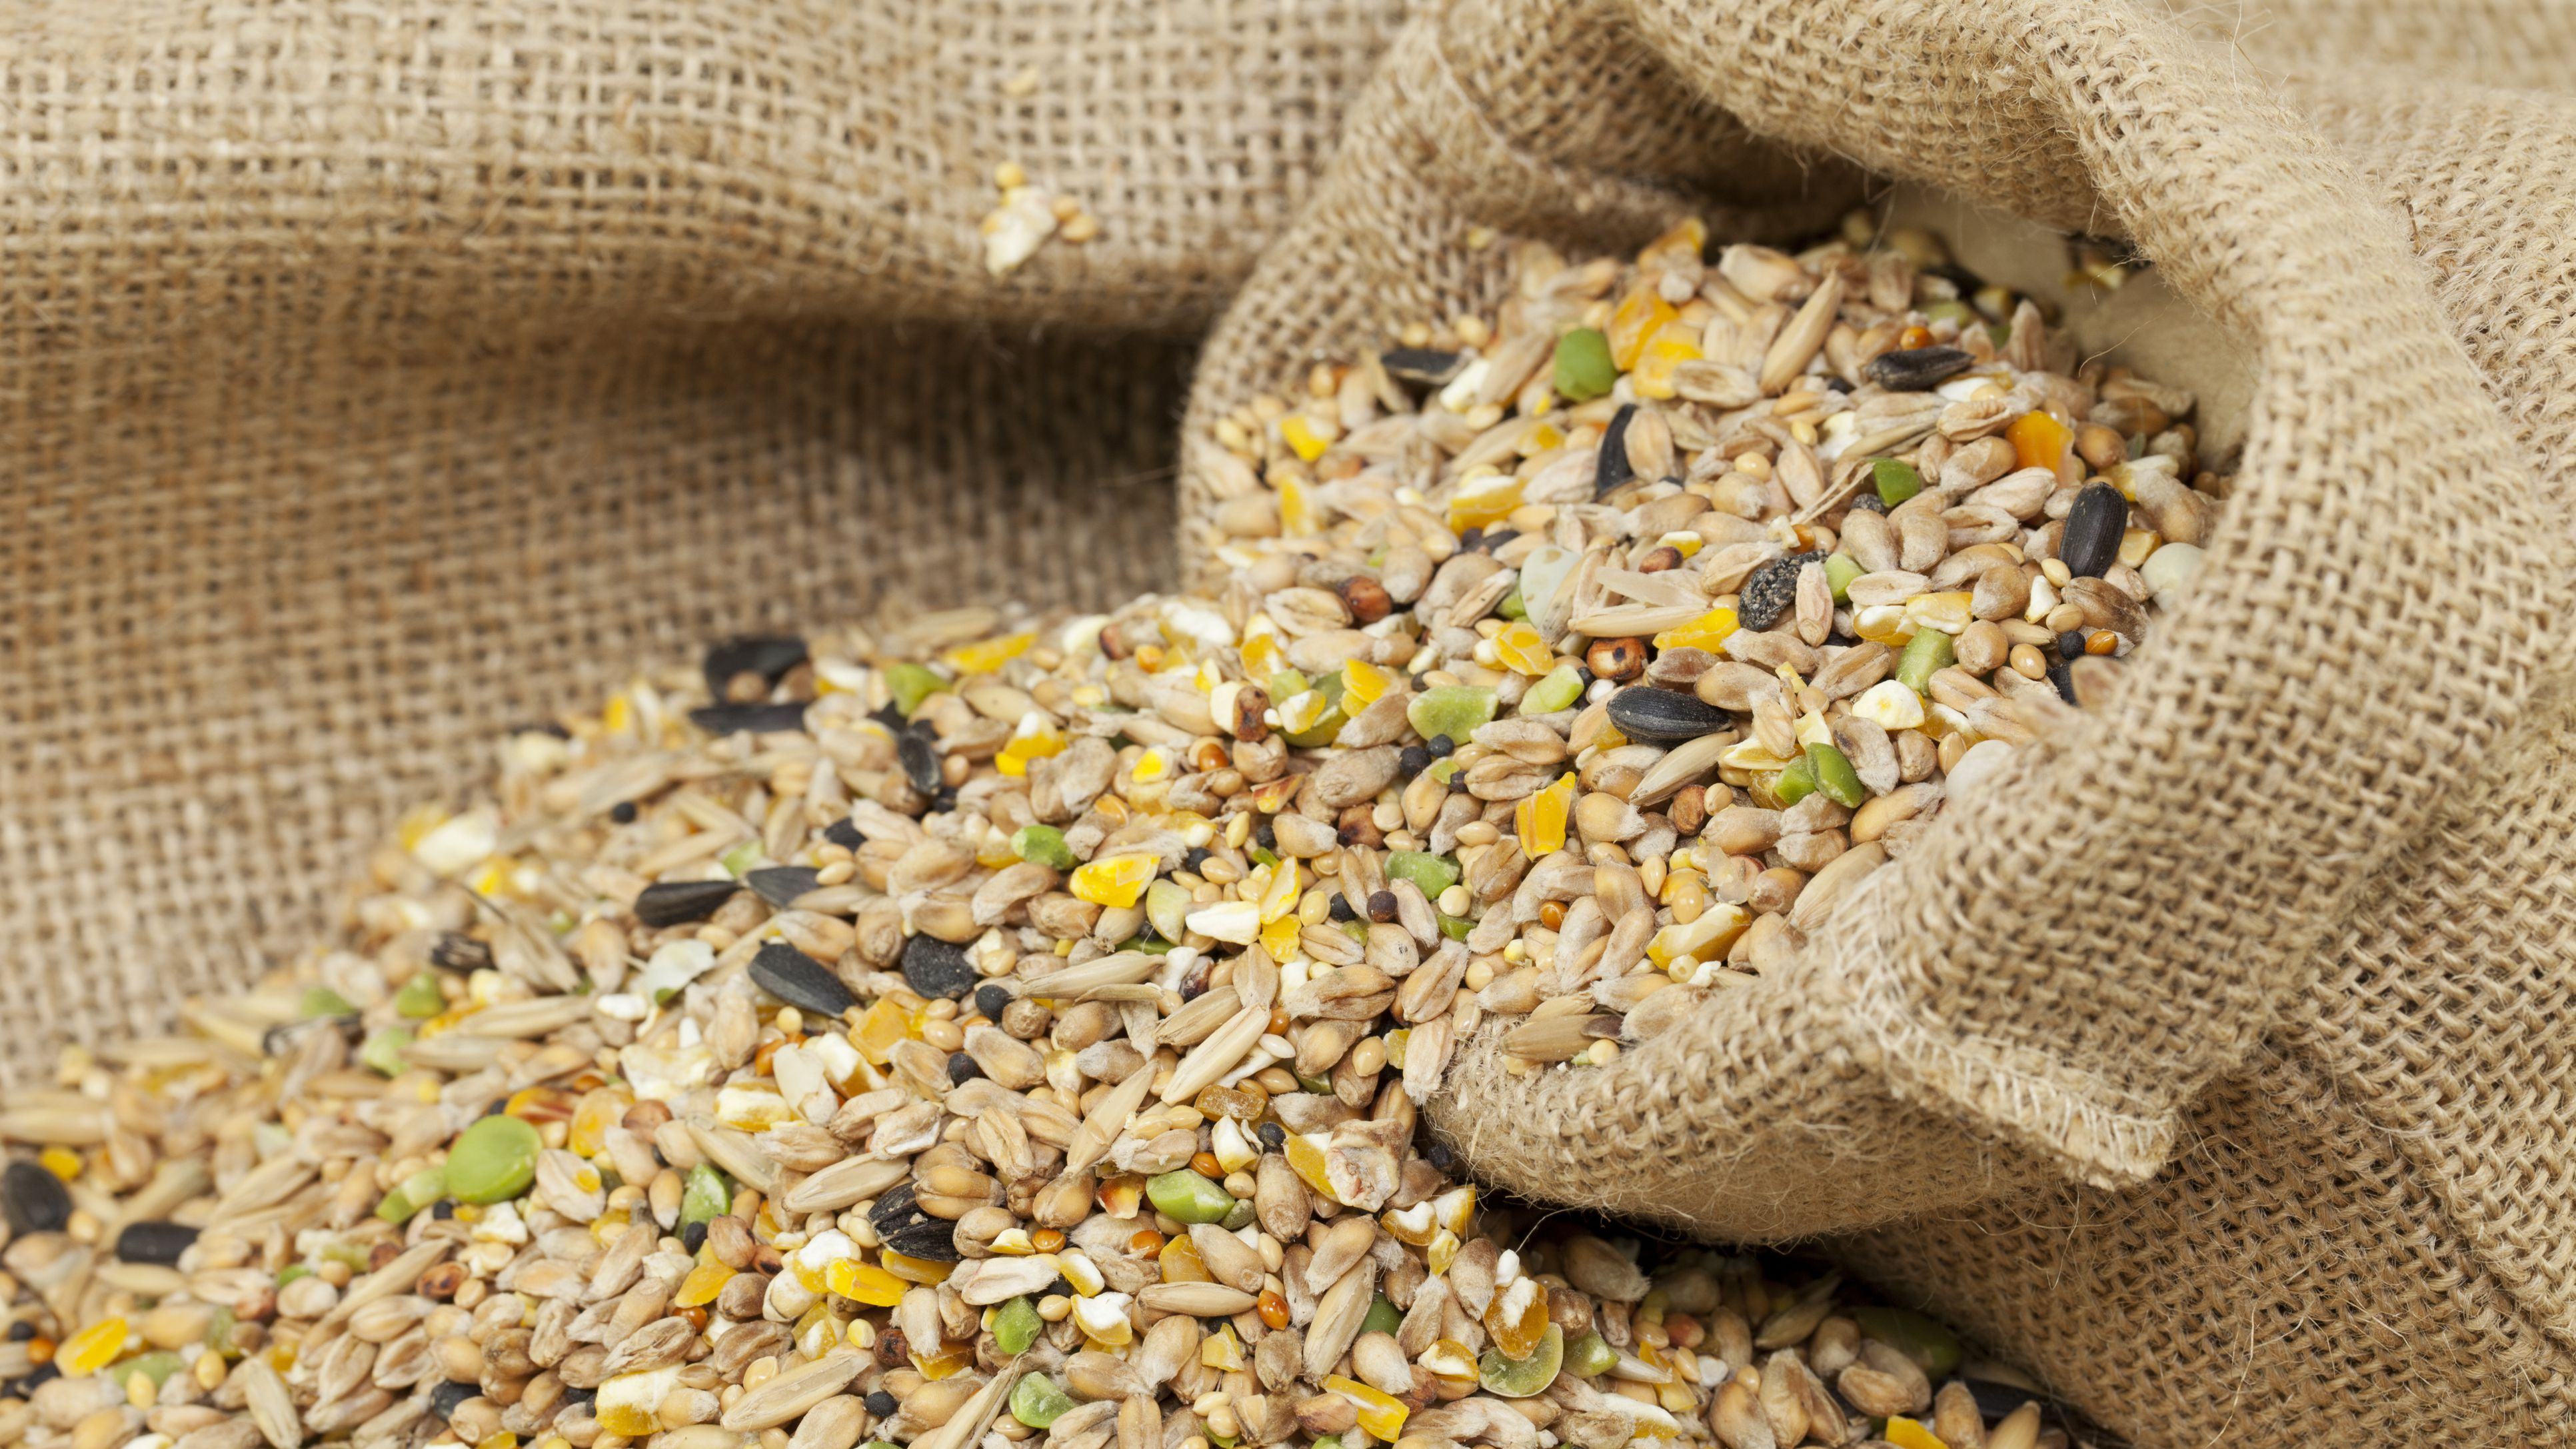 What can I use a bird food?